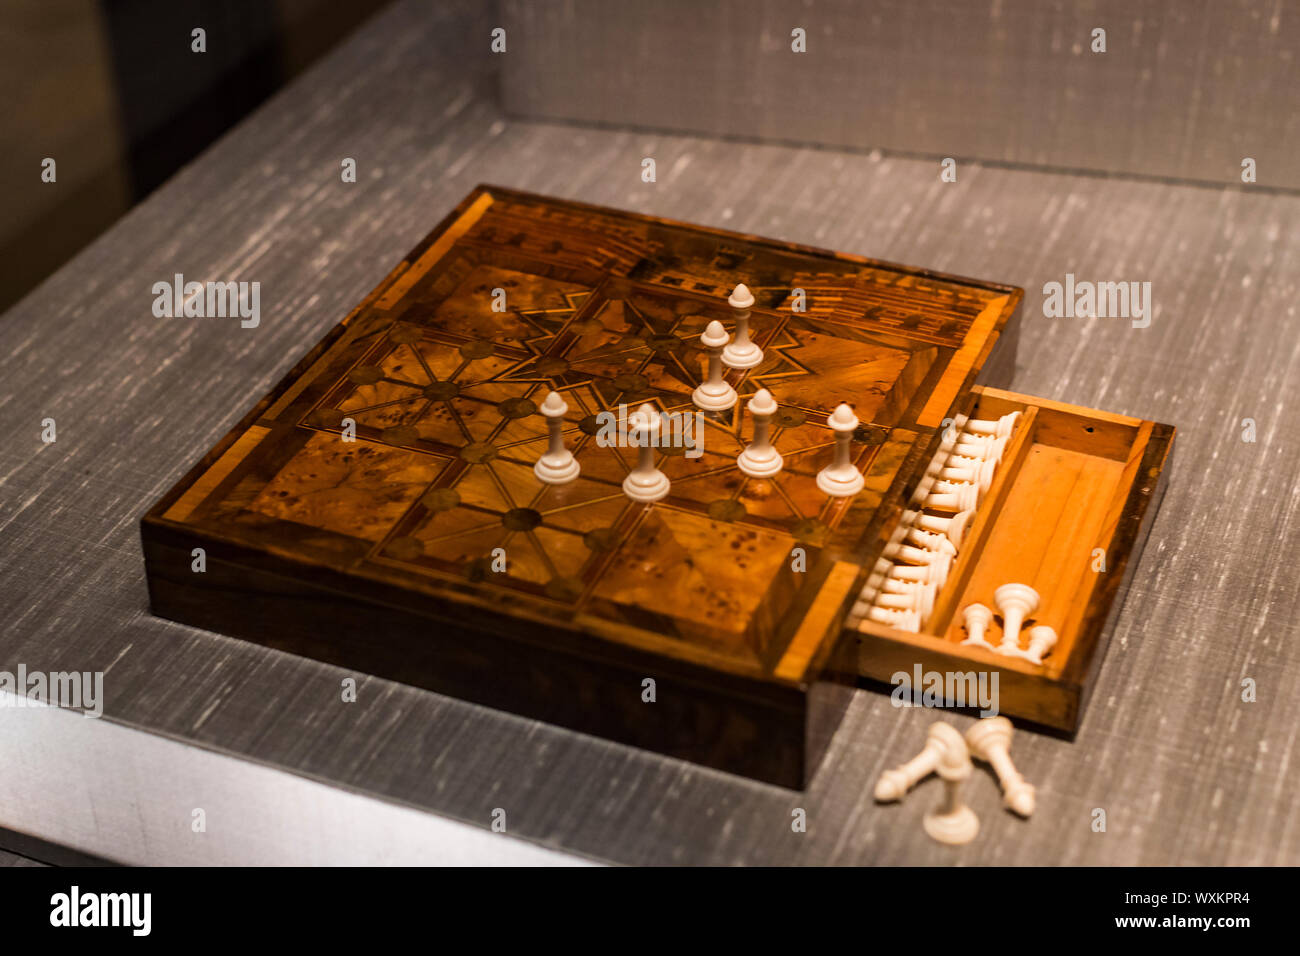 MUNICH, GERMANY - NOVEMBER 27, 2018 : The Represents an exposition of the history of the development of board games chess backgammon poker in the Bava - Stock Photo